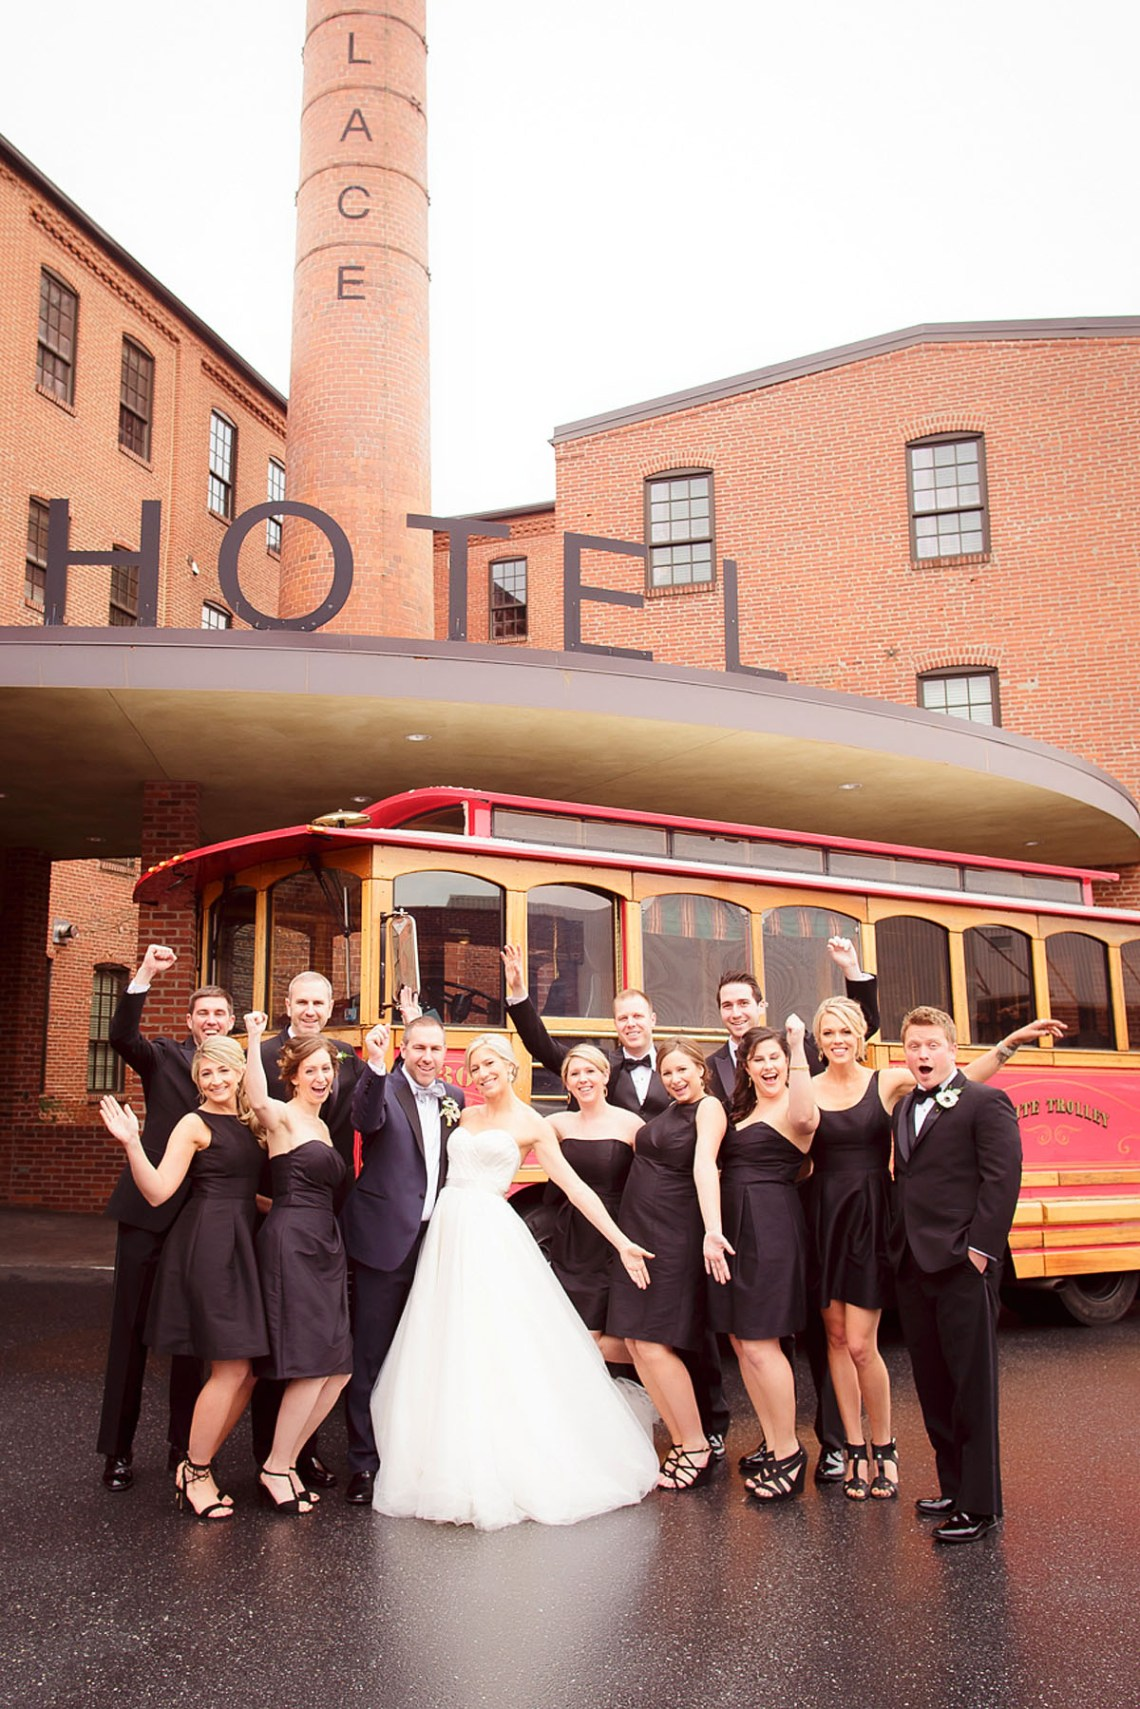 Cork Factory Hotel Wedding in Lancaster PA